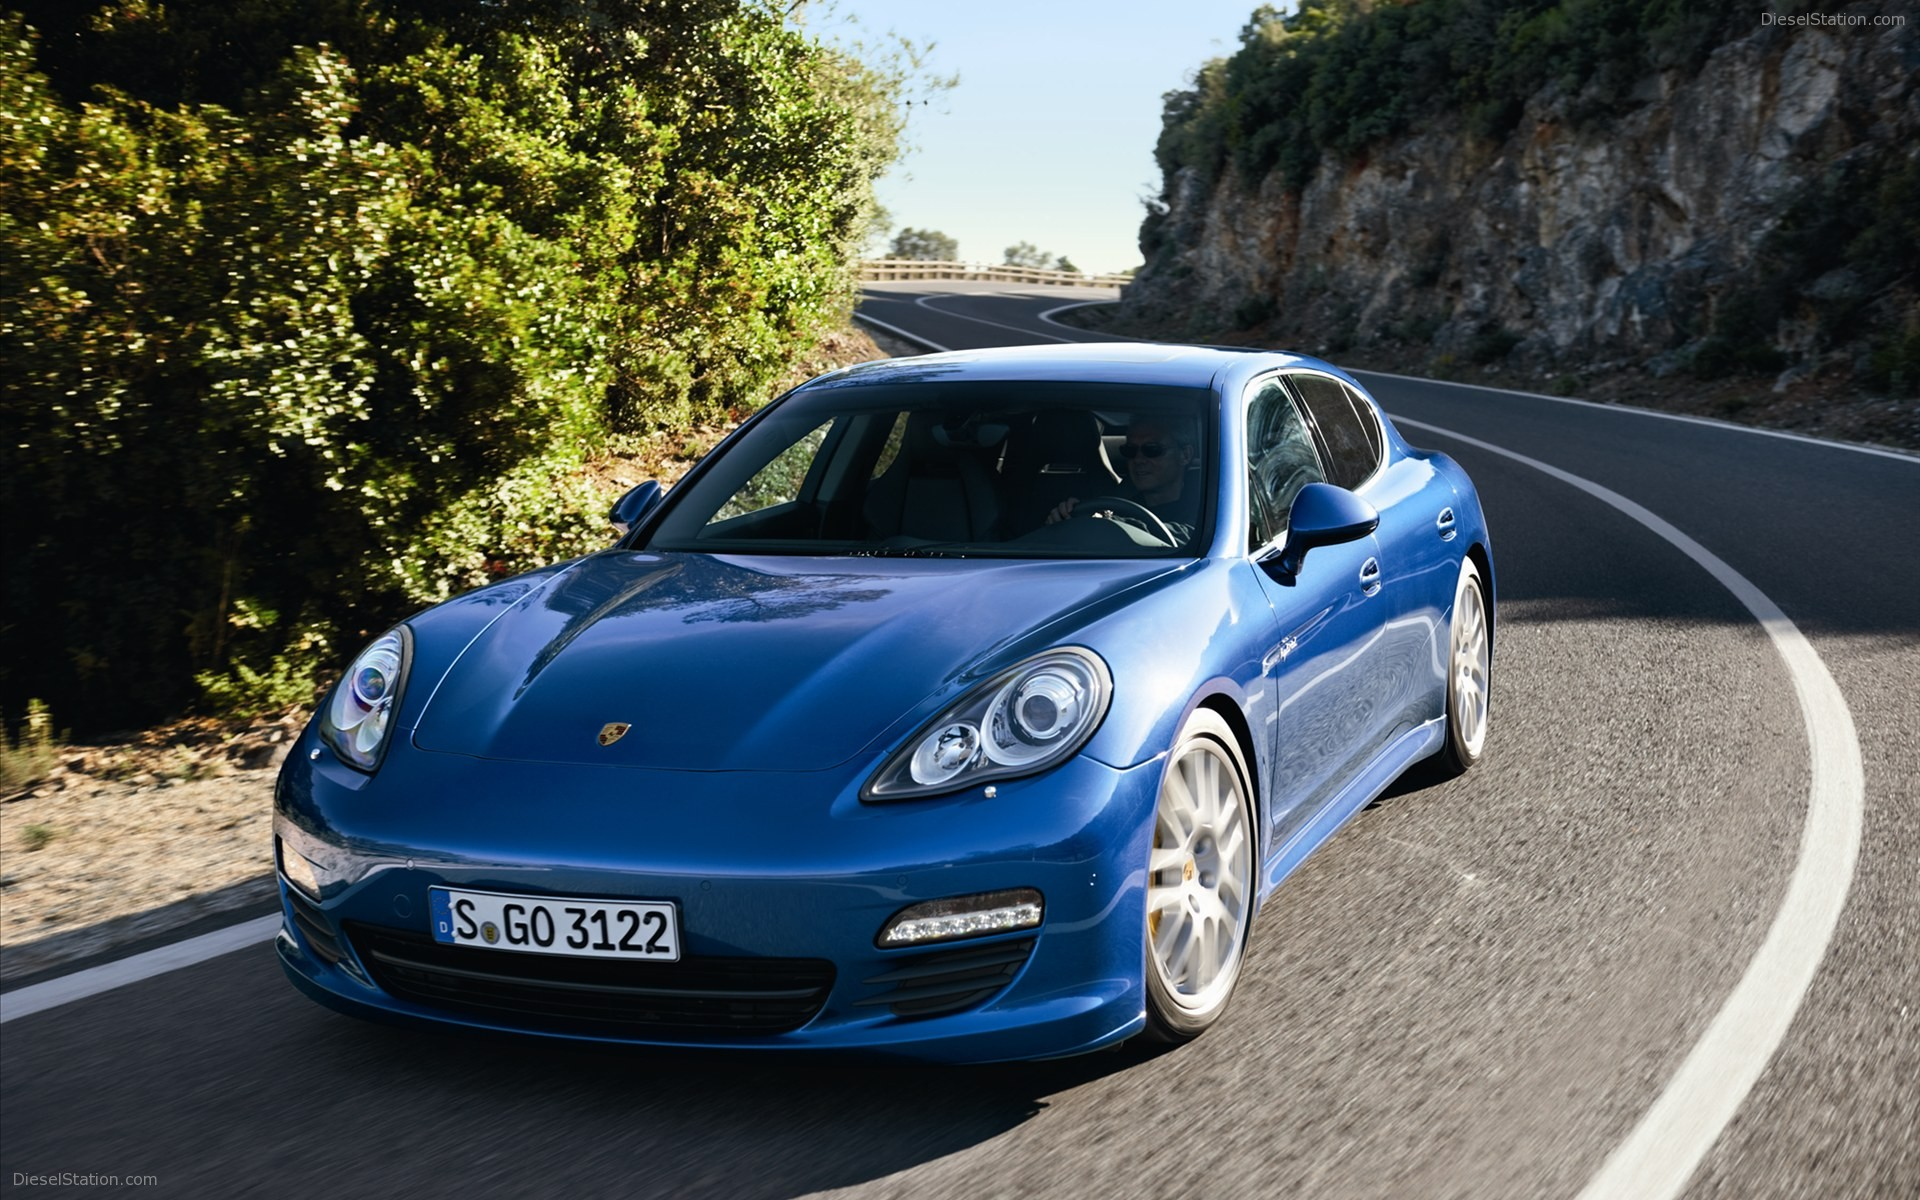 Porsche Panamera S 2011 Technical Specifications Interior And Fuse Box Diagram Photo 2